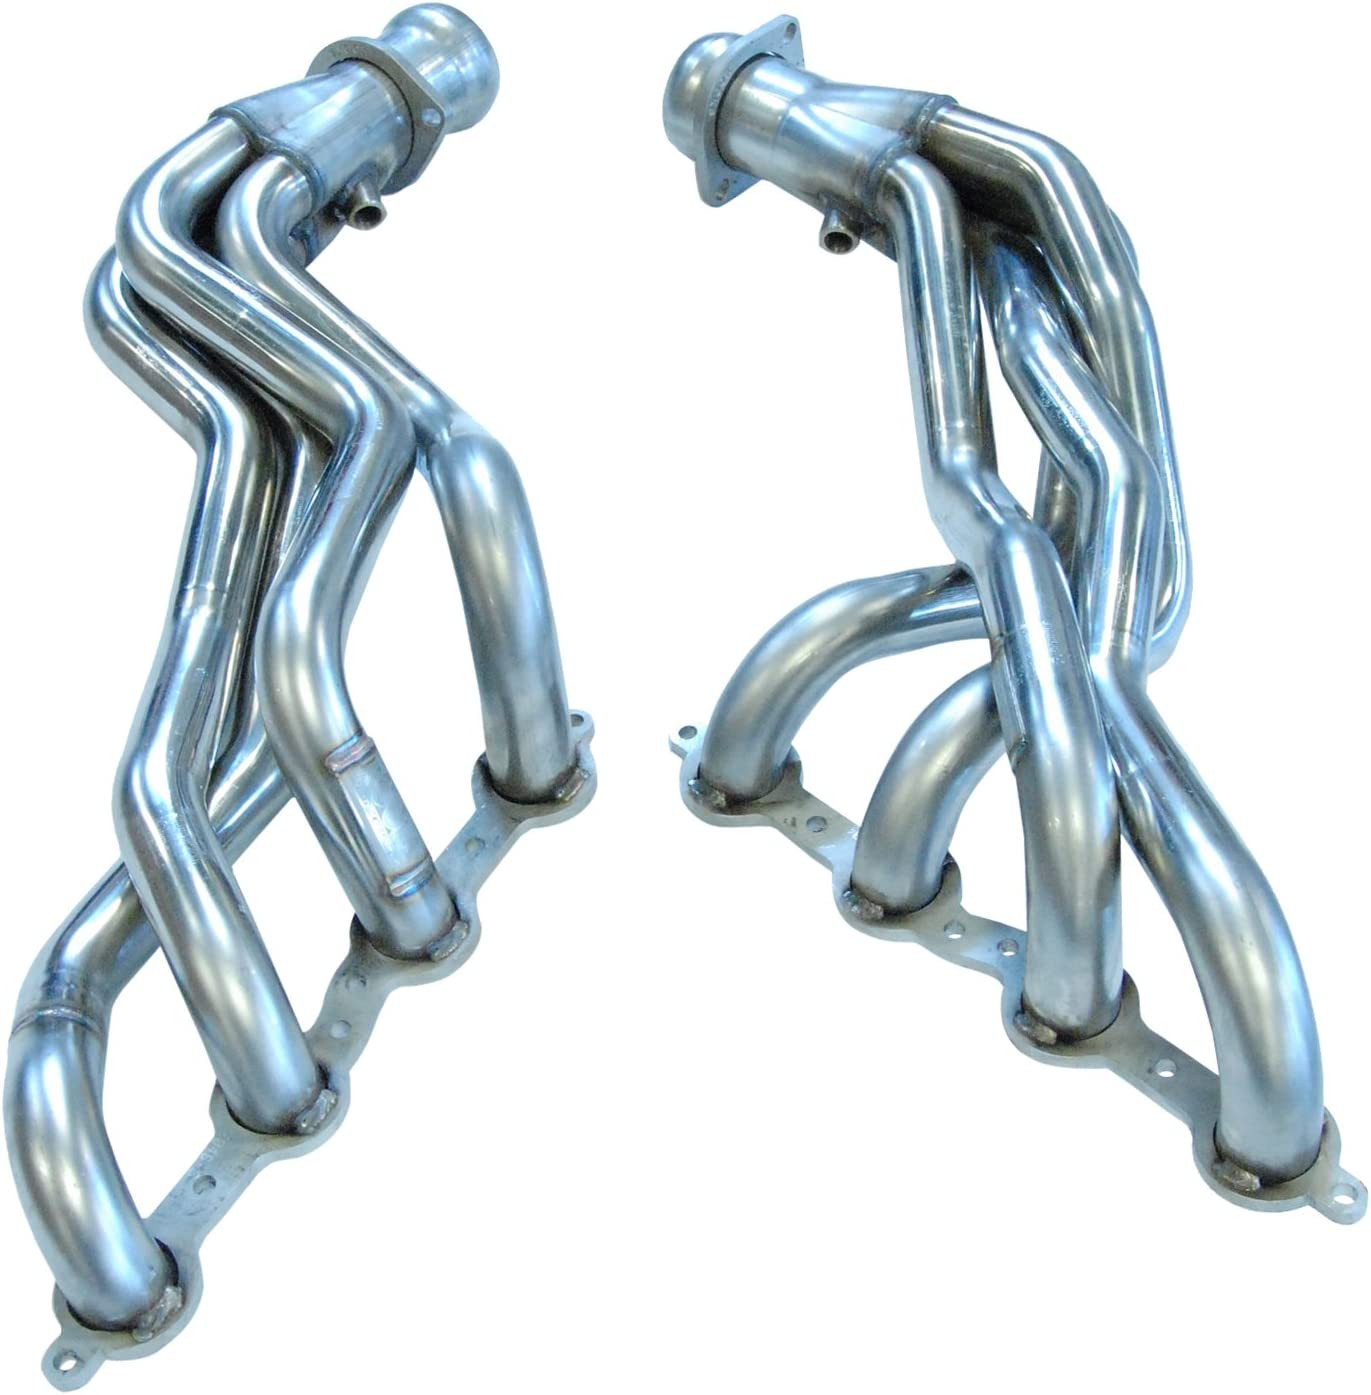 Non-CARB Compliant Kooks 23102400 1-7//8 x 3 Stainless Steel Long Tube Header